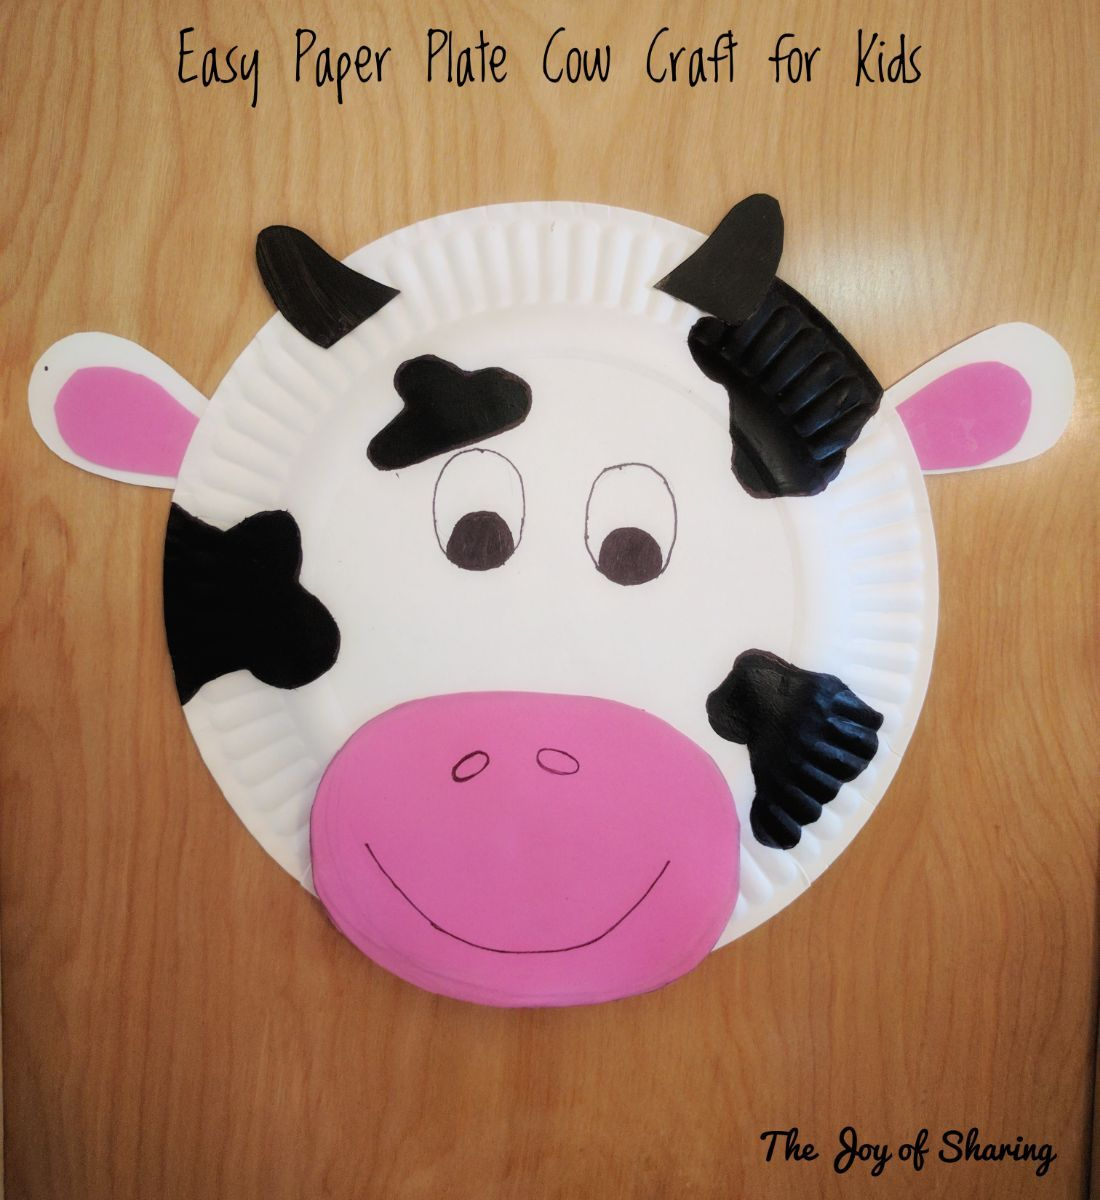 Paper Plate Cow Craft Cow Craft Preschool Crafts Animal Crafts For Kids [ 1200 x 1100 Pixel ]